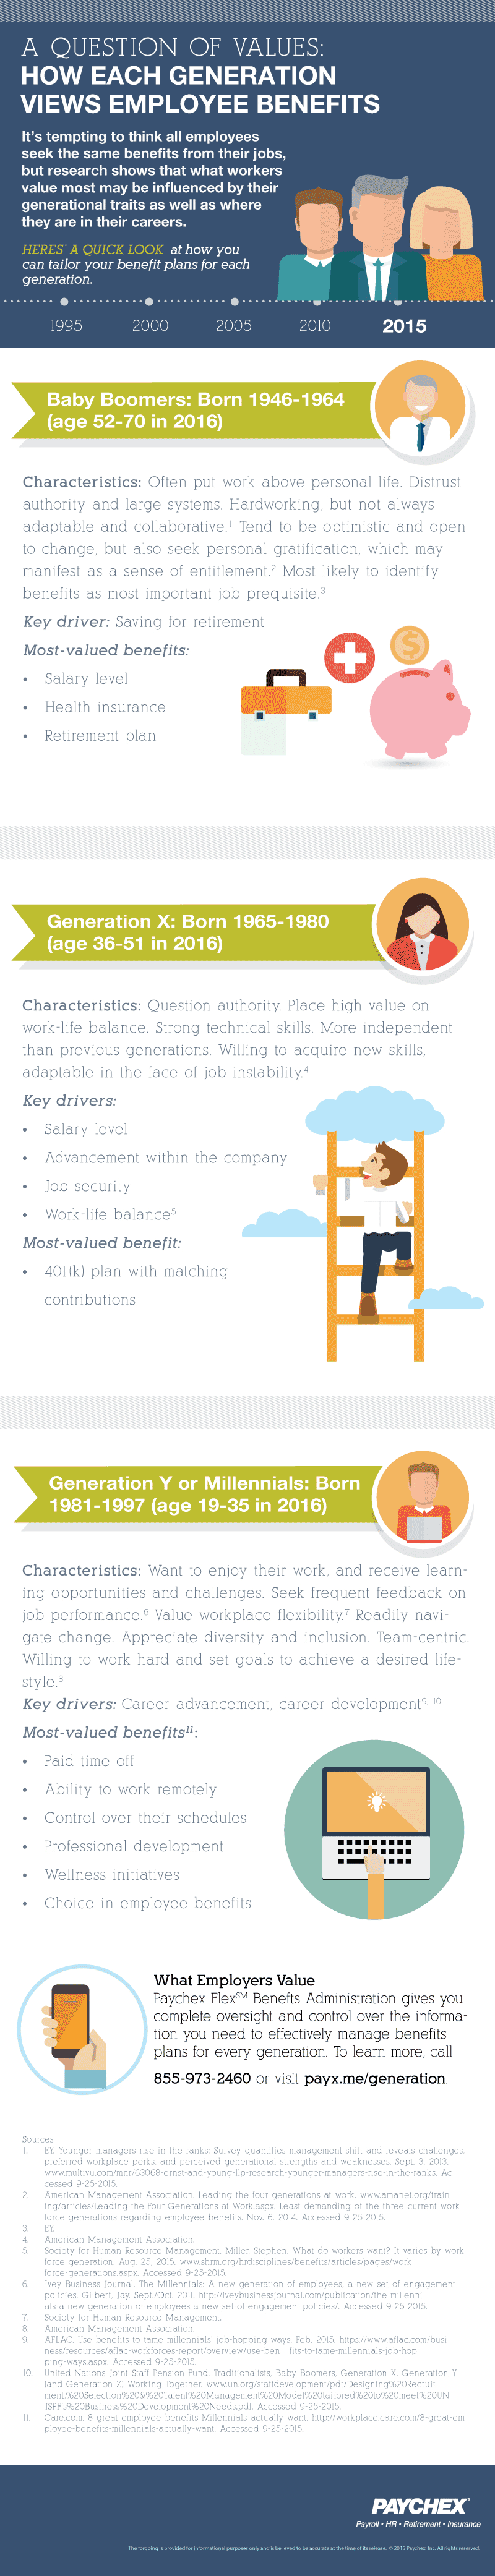 infographic-how different generations value employee benefits